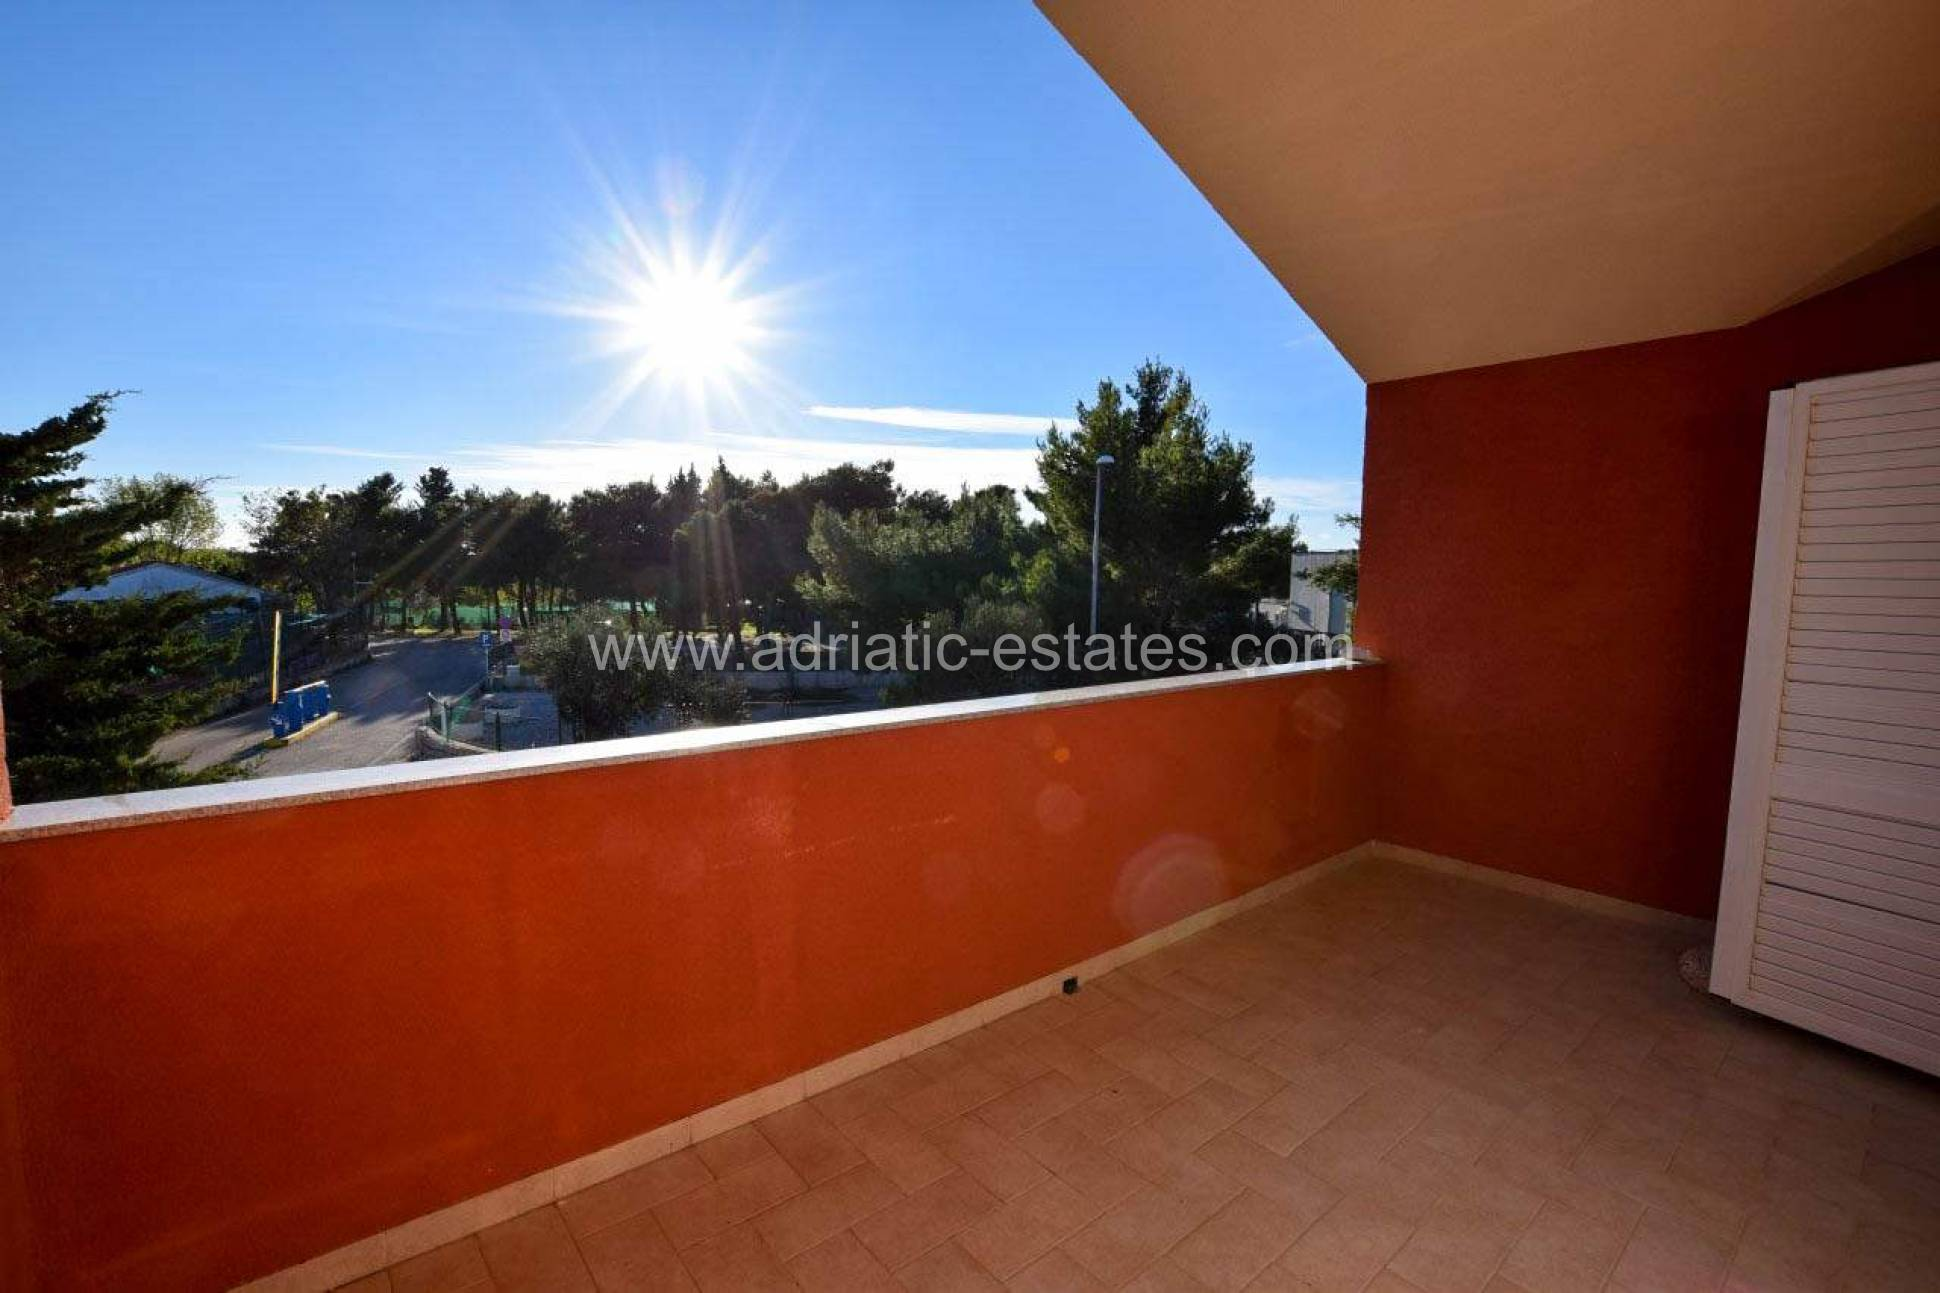 Rwo-appartment house in Vodice